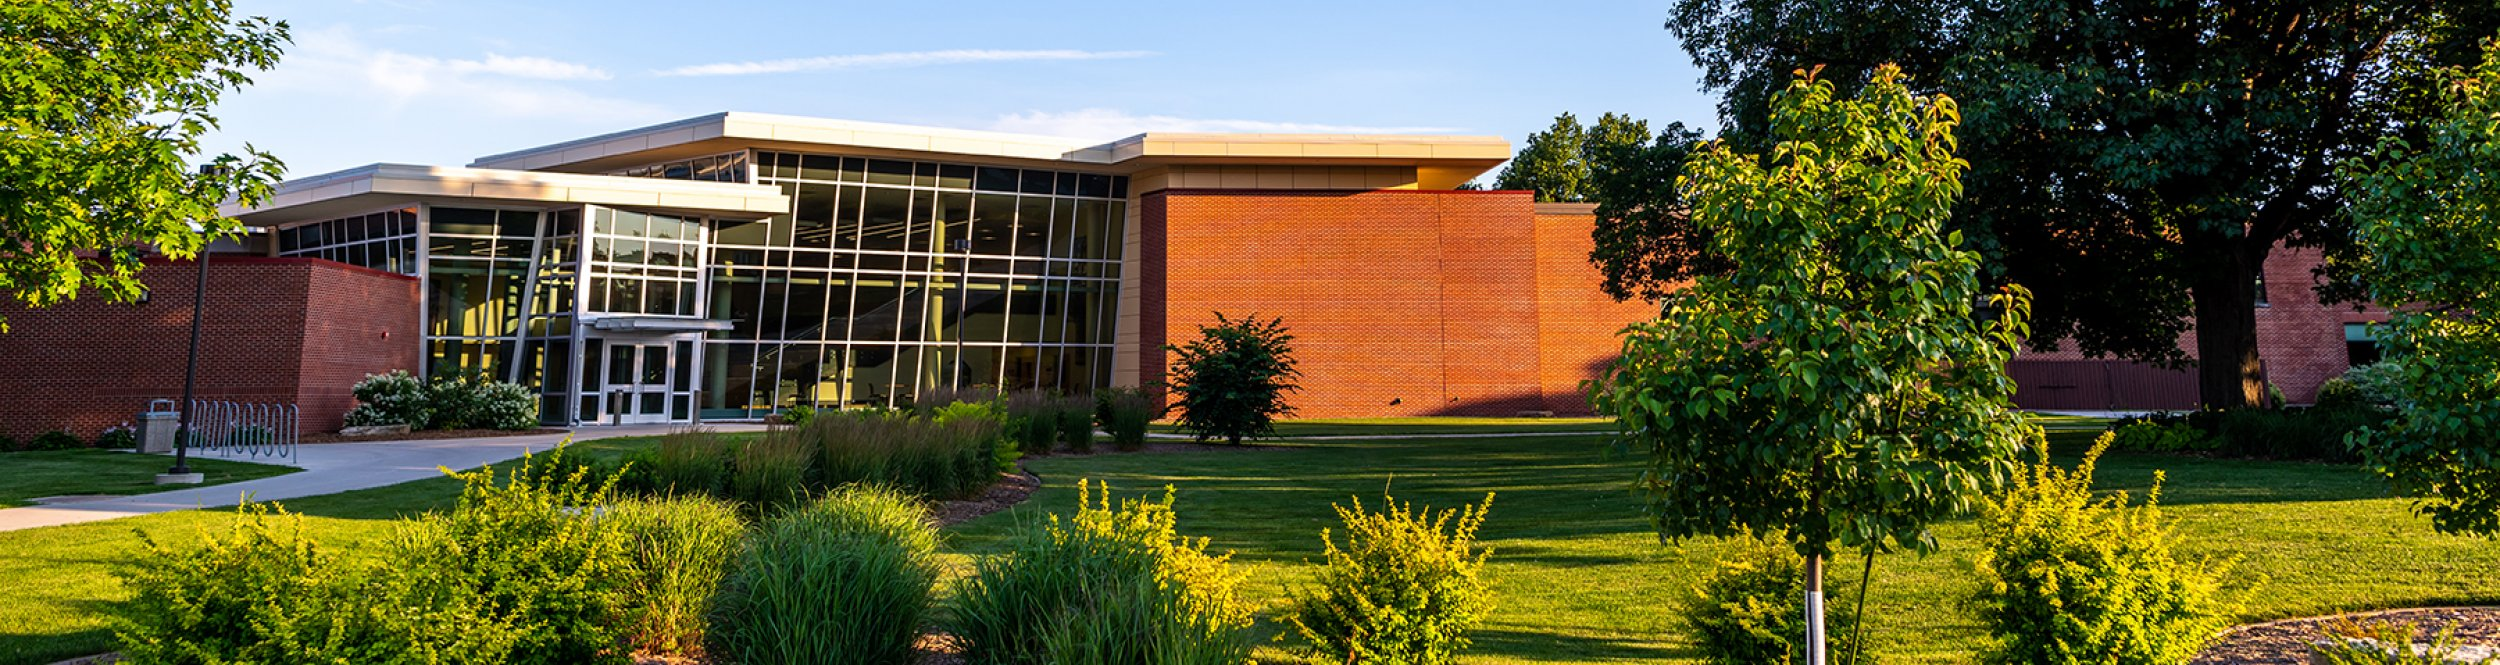 A large brick science building with a wall of glass windows.